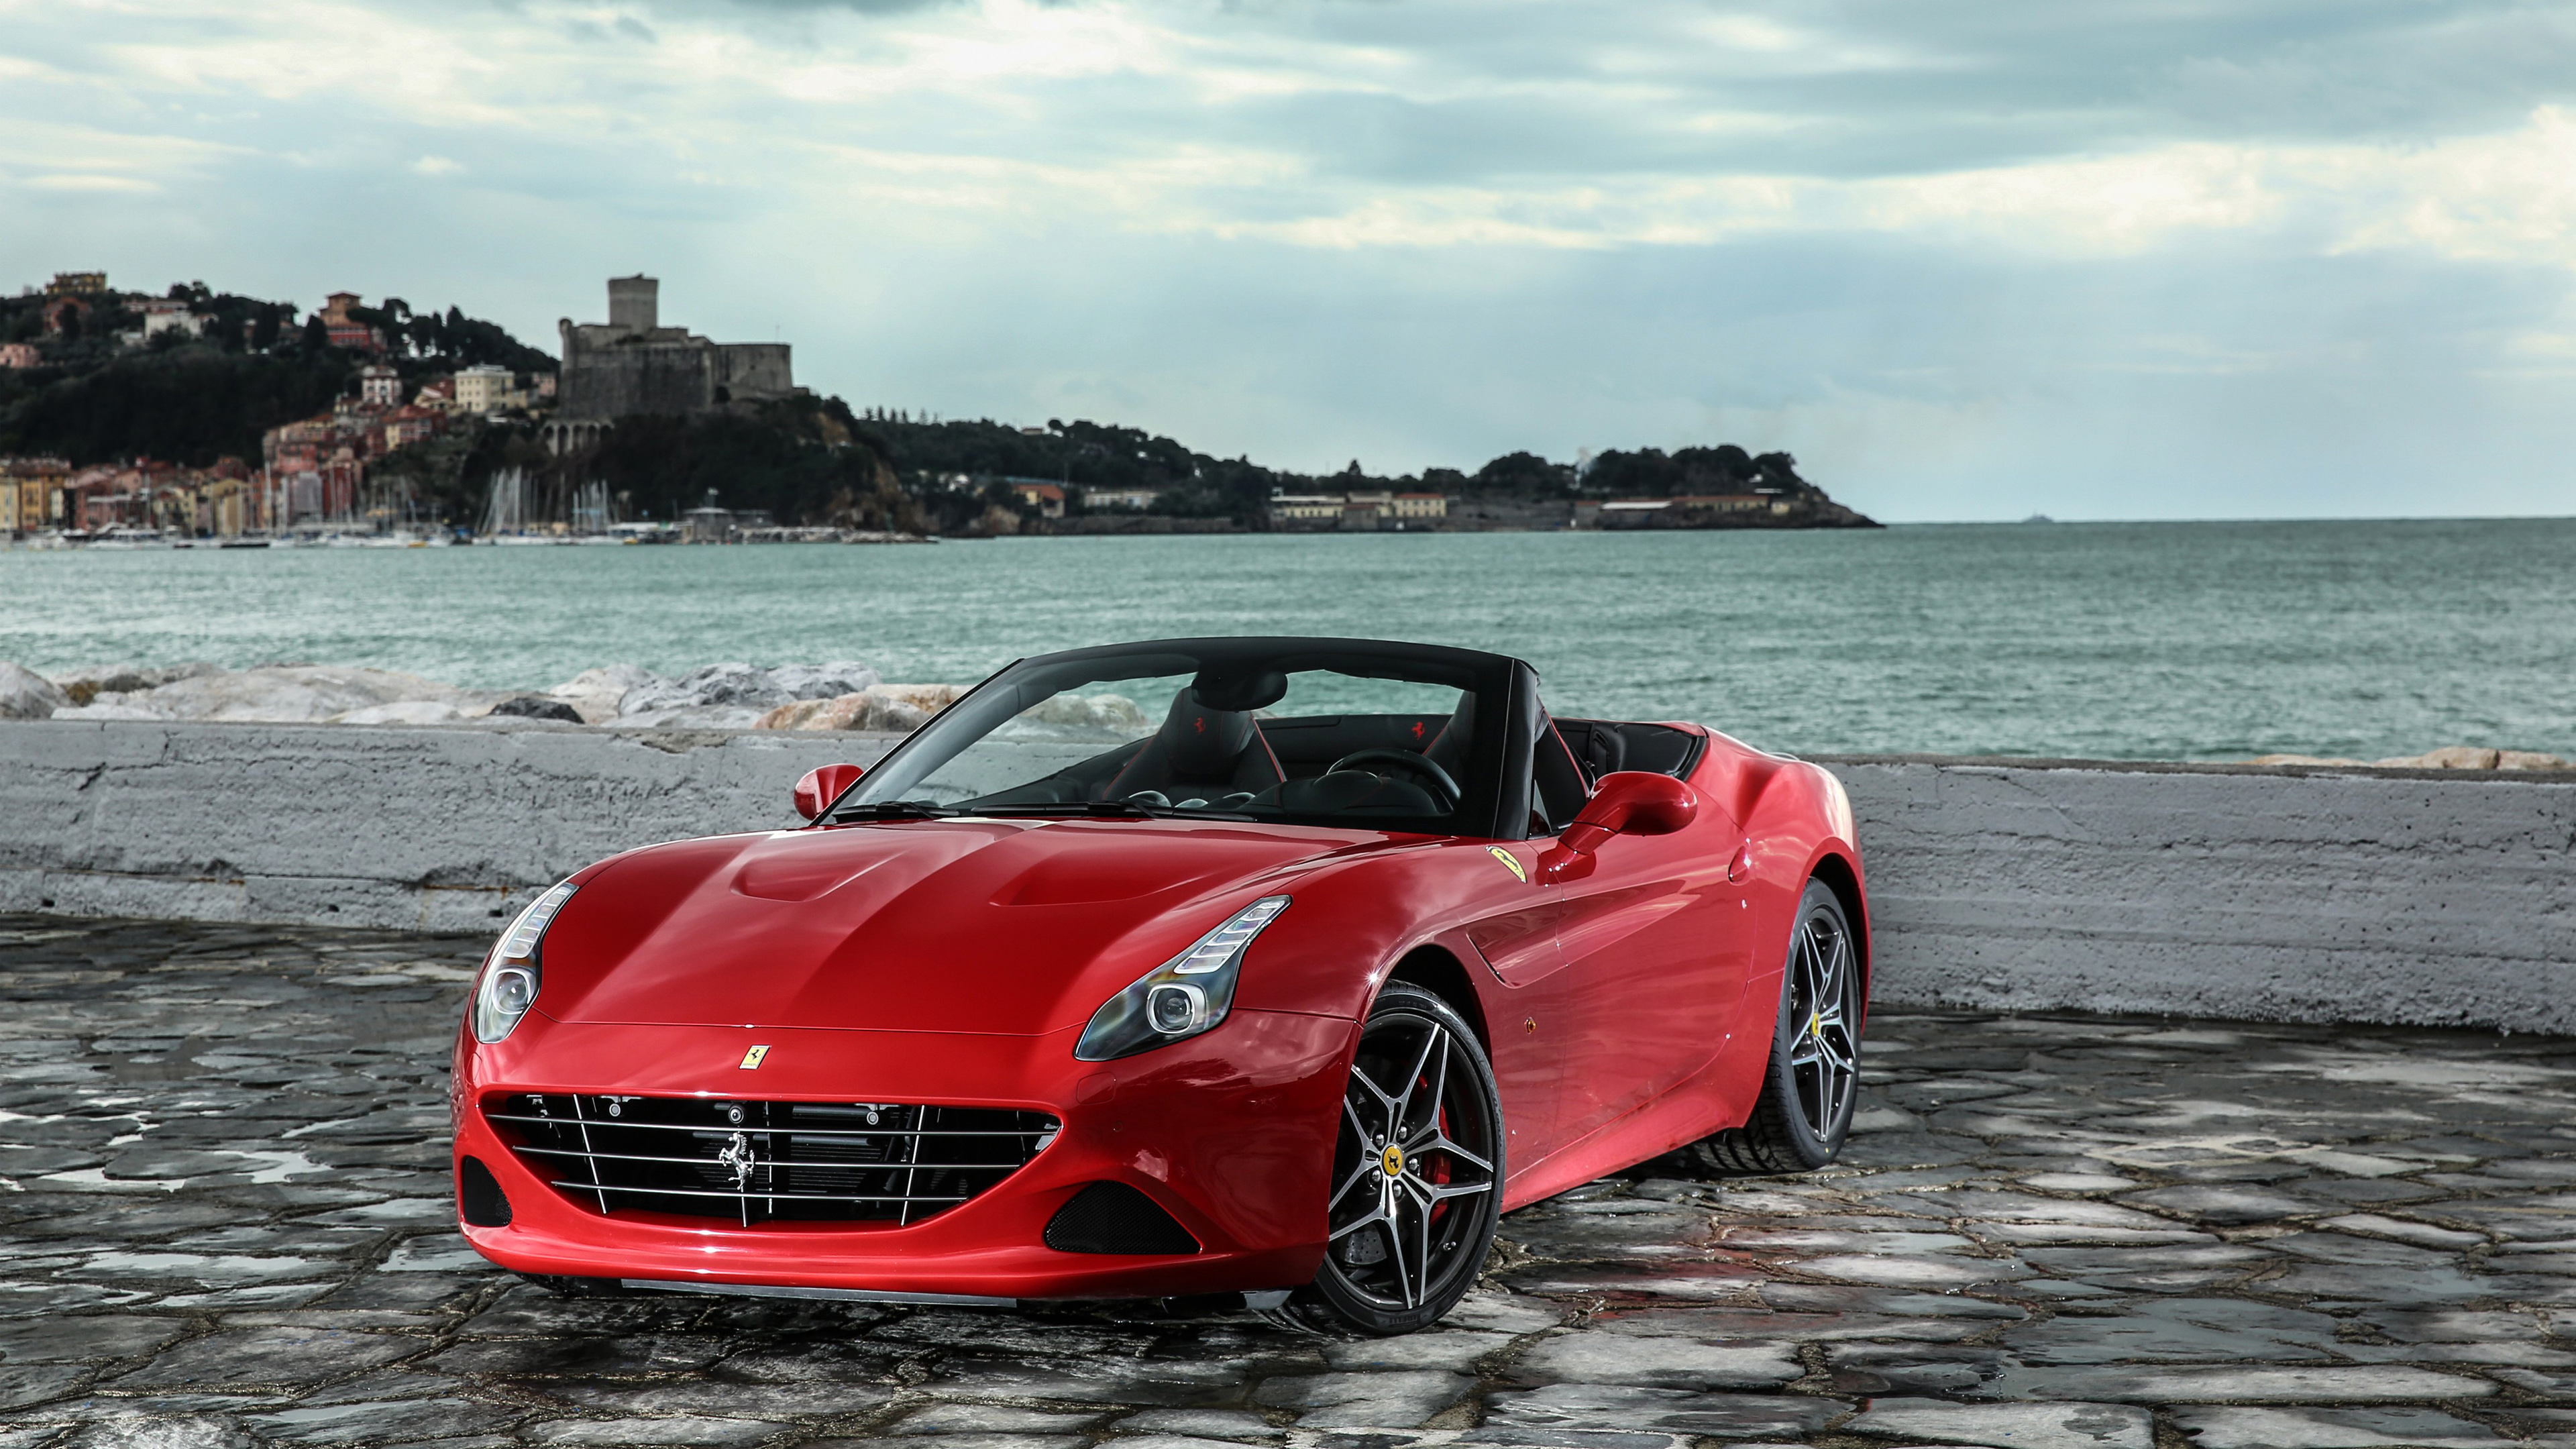 Apple Sport Chevrolet >> 2016 Ferrari California T HS Wallpaper | HD Car Wallpapers ...